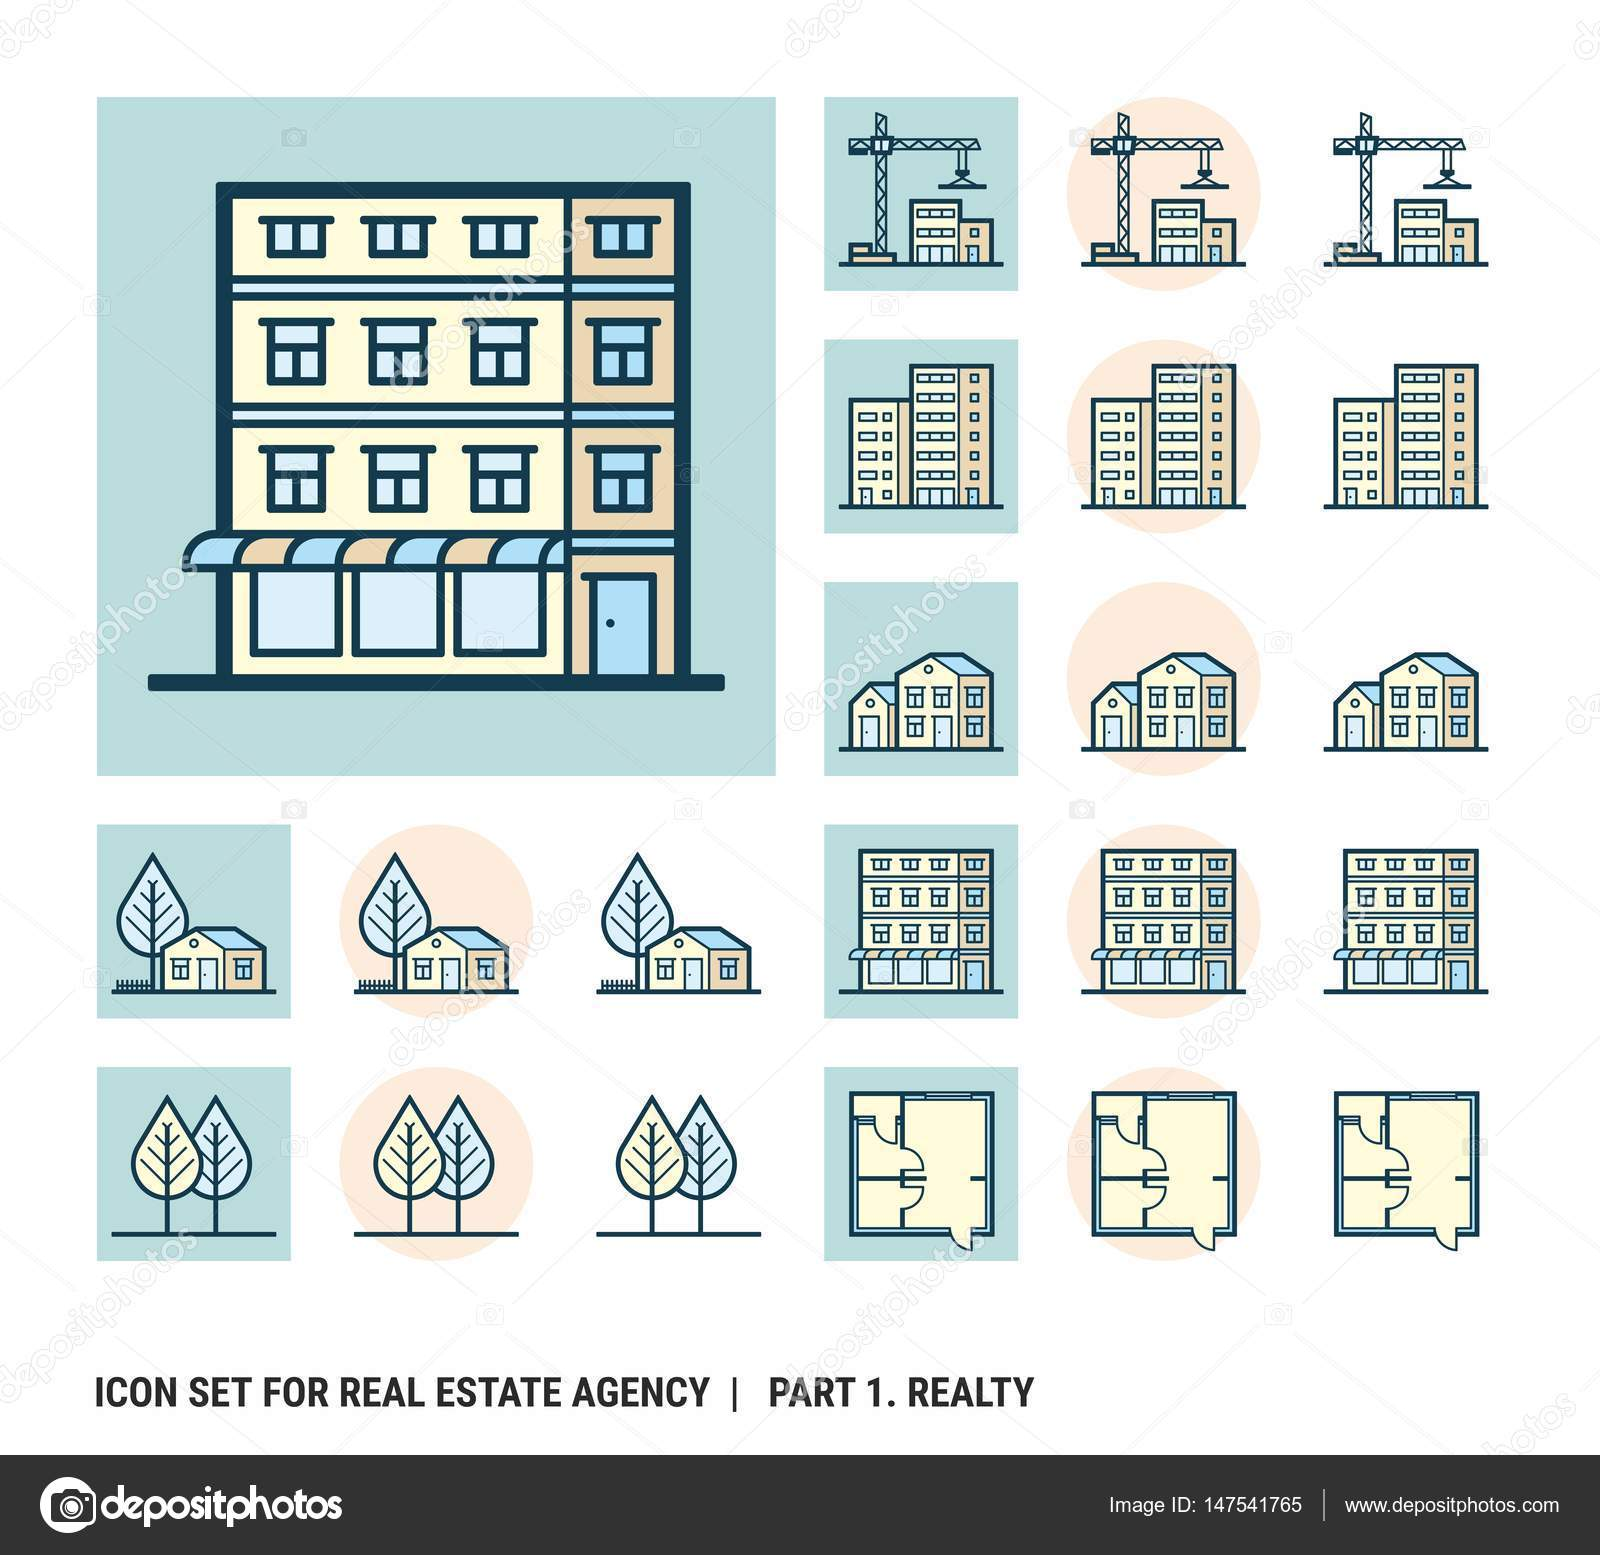 Real Estate Development Icon : Icon set for real estate agency part realty — stock